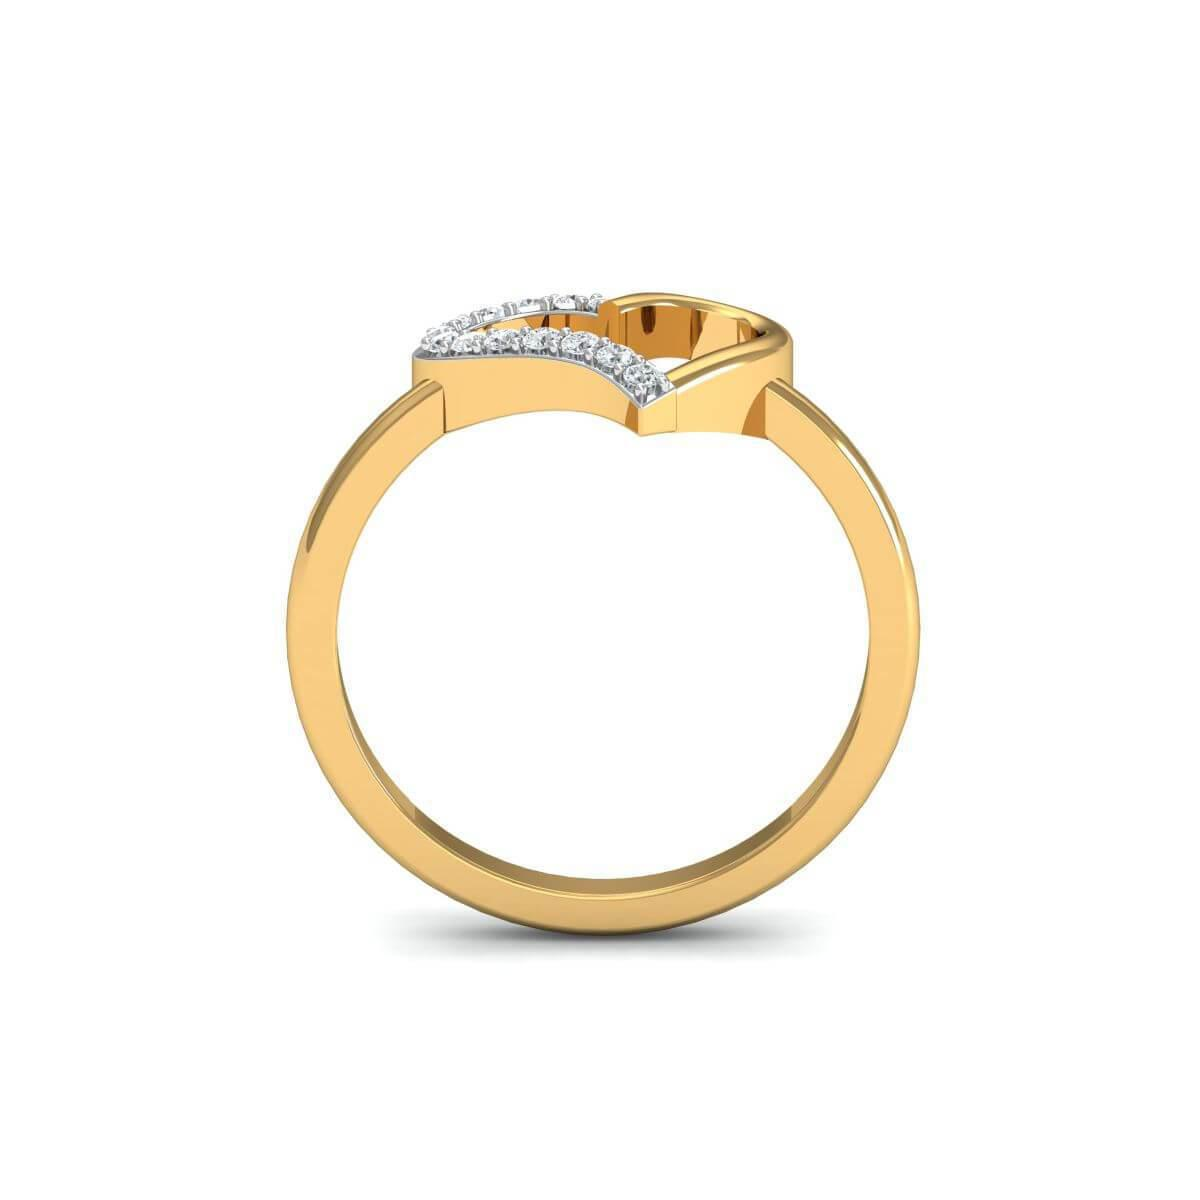 Diamoire Jewels 18kt Yellow Gold Pave 0.15ct Diamond Infinity Ring With Aquamarine - UK G - US 3 3/8 - EU 45 1/4 aEAFu7v